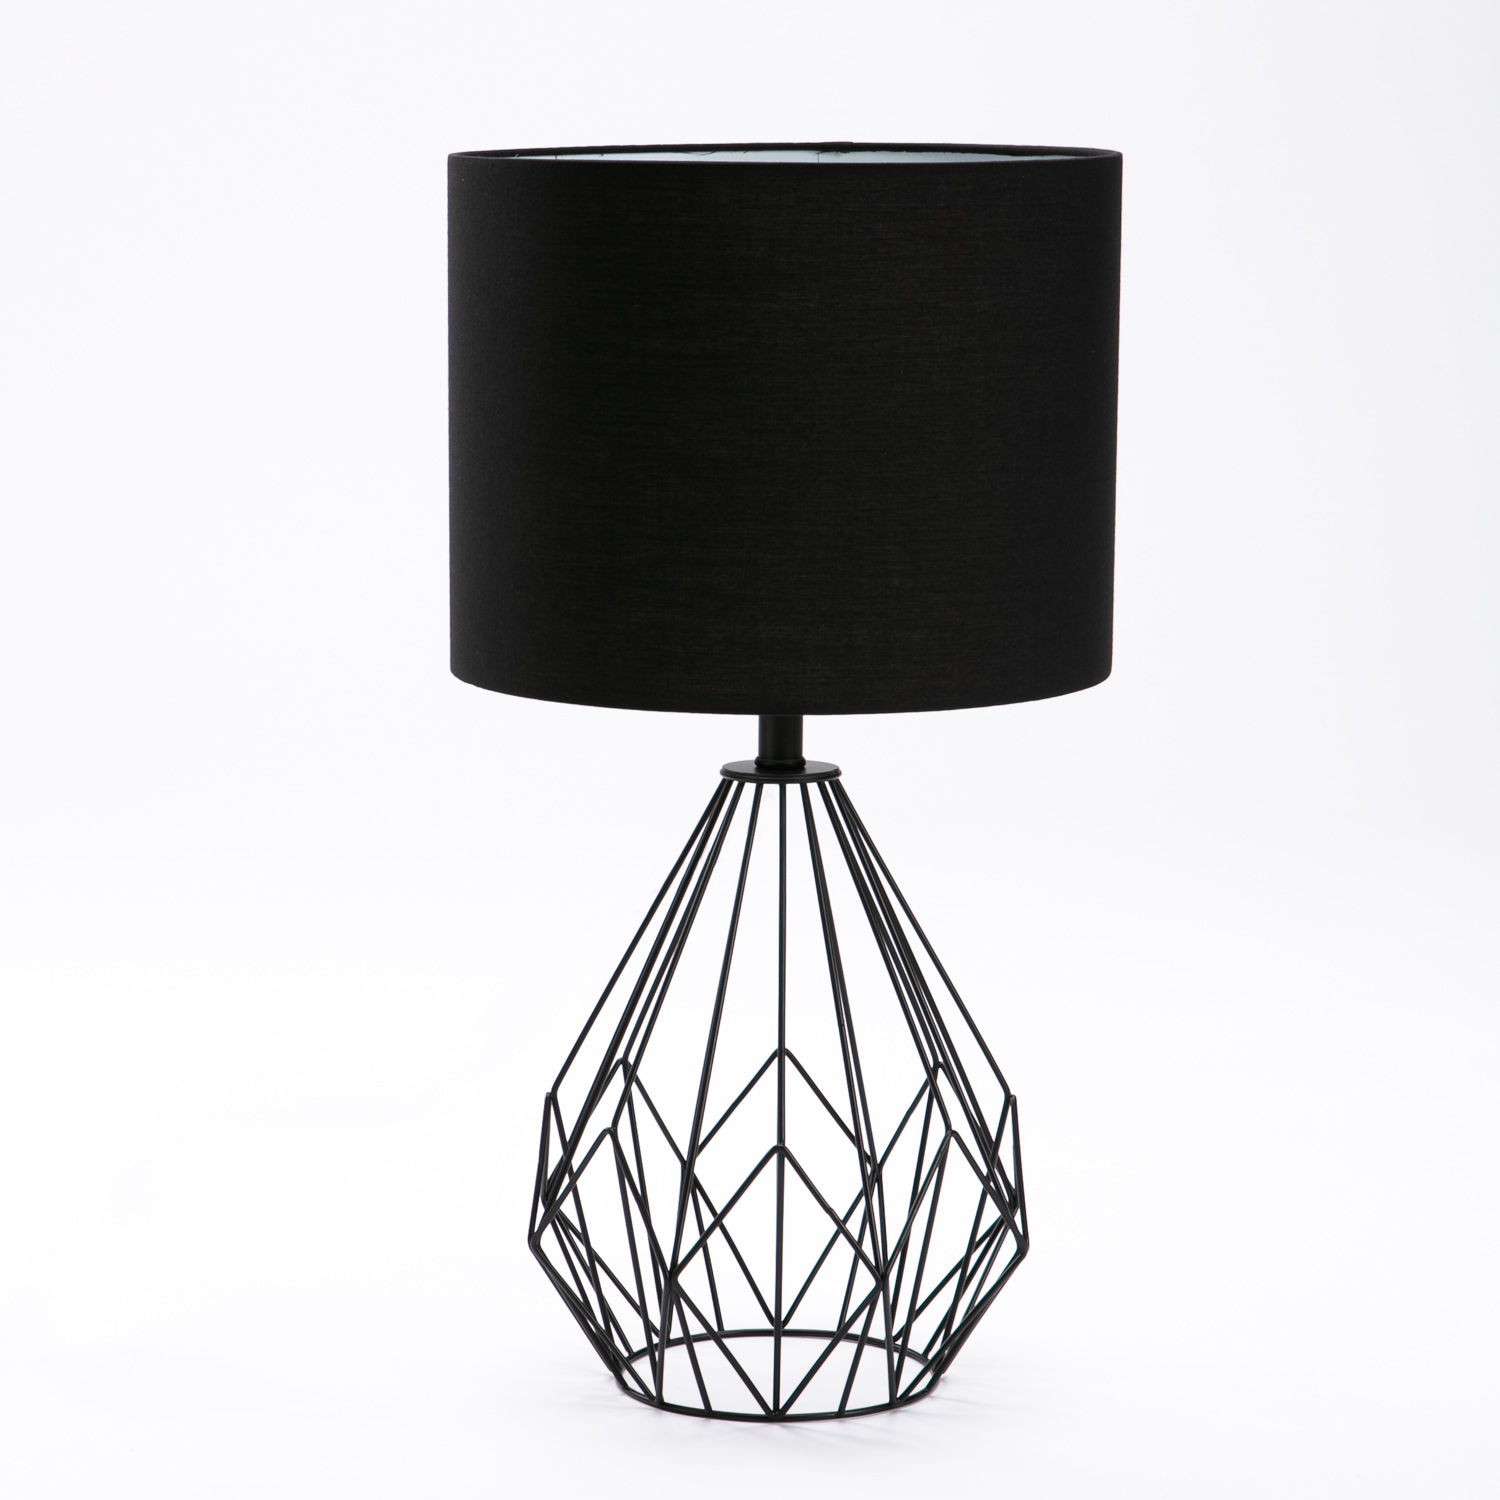 TABLE LAMP BLACK METAL WIRE BASE BLACK FABRIC SHADE